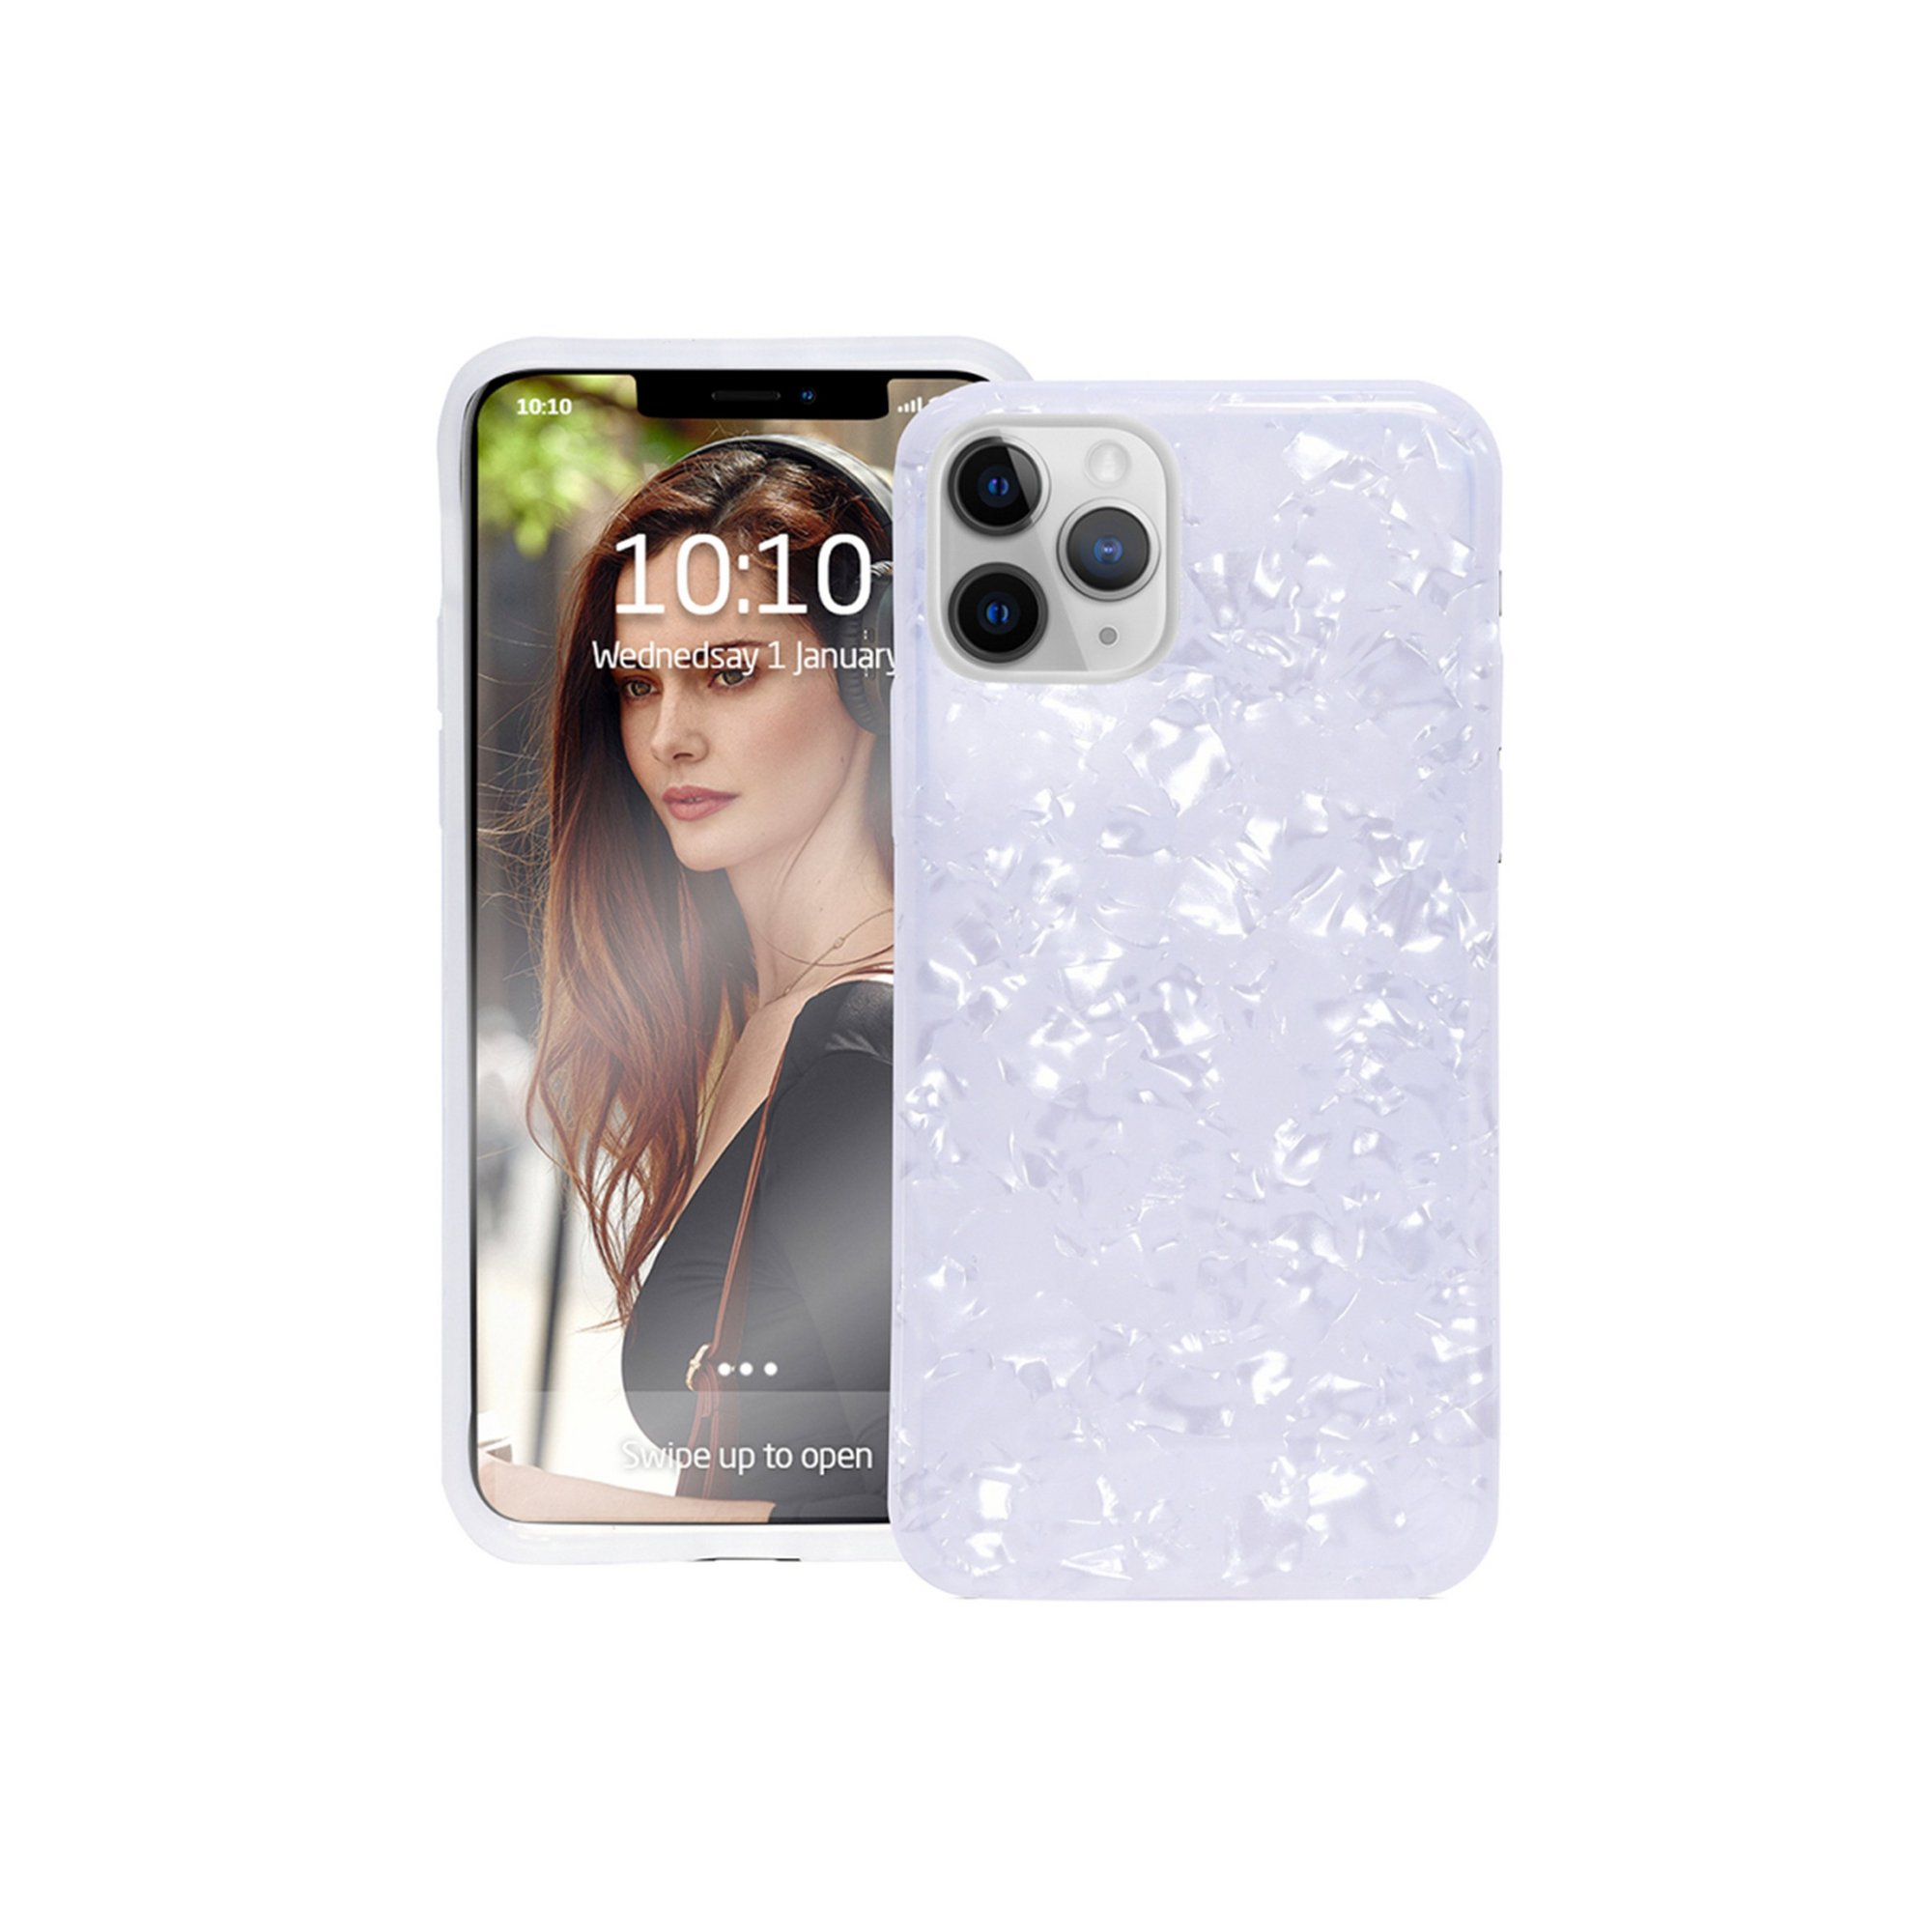 Image of Groov-e Design Case for iPhone 11 Pro - Pearl White